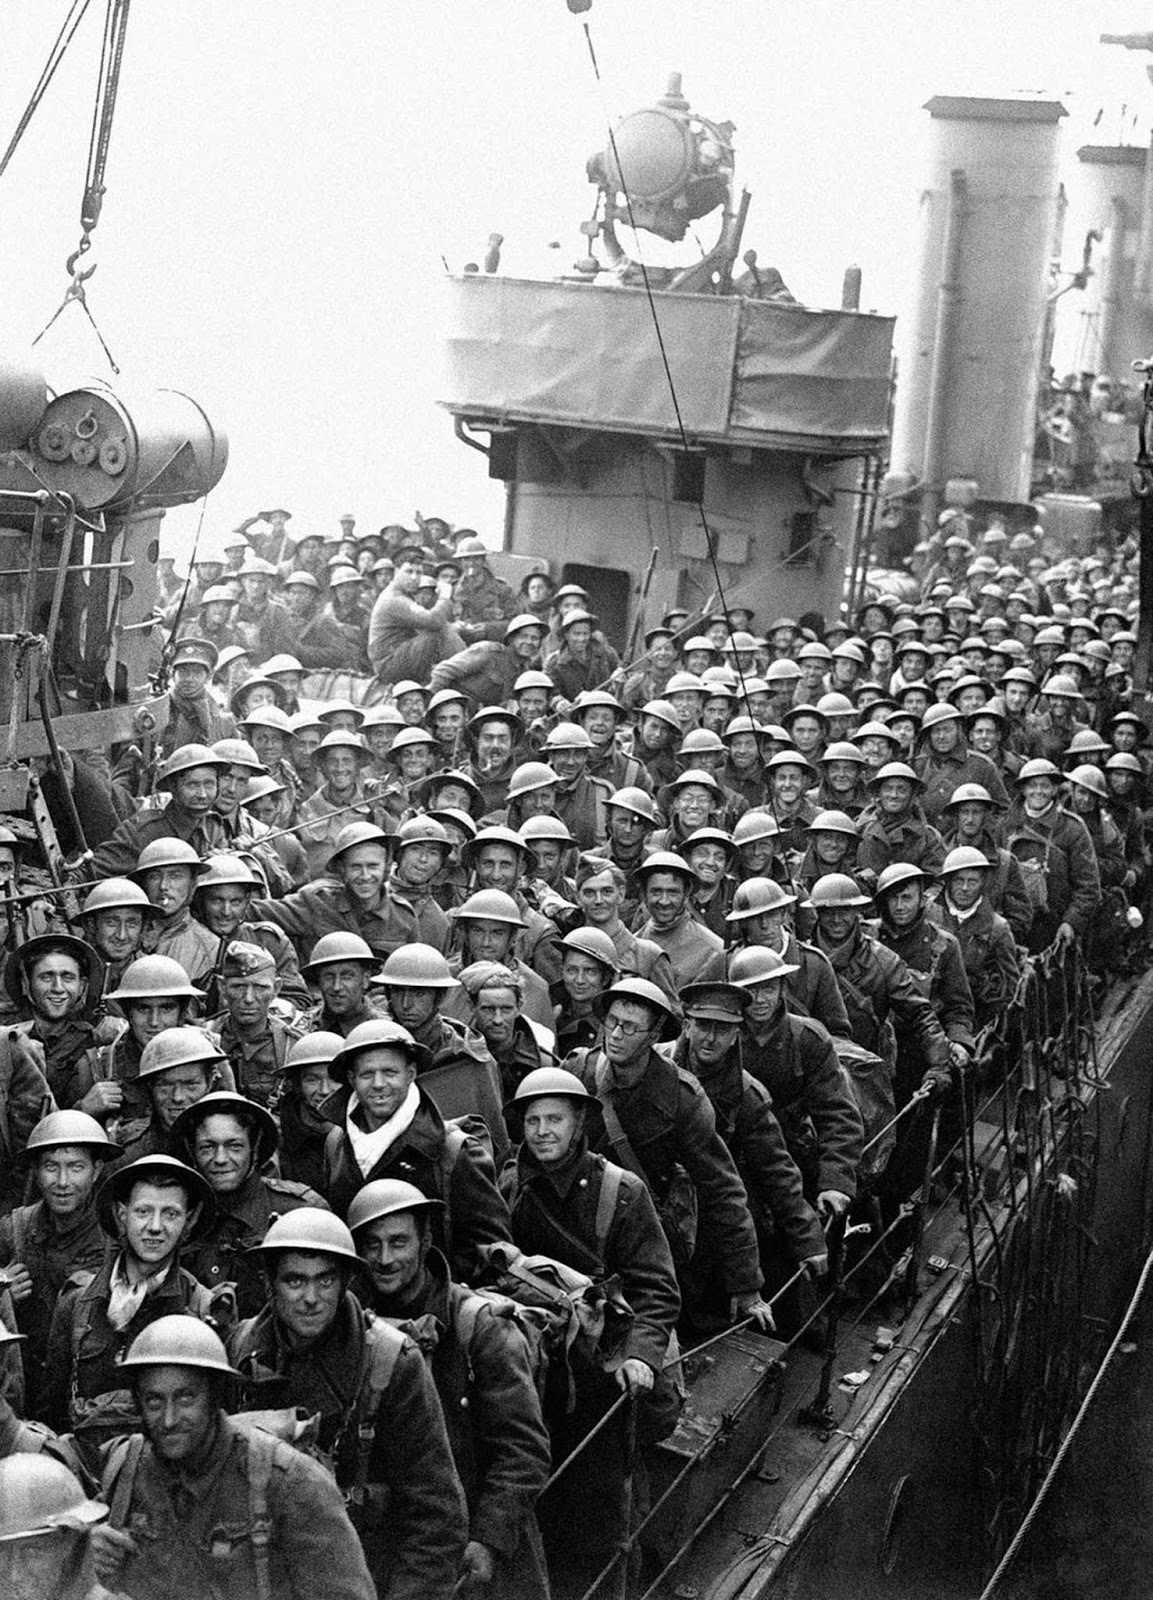 British Expeditionary Forces safely arrive back in England.